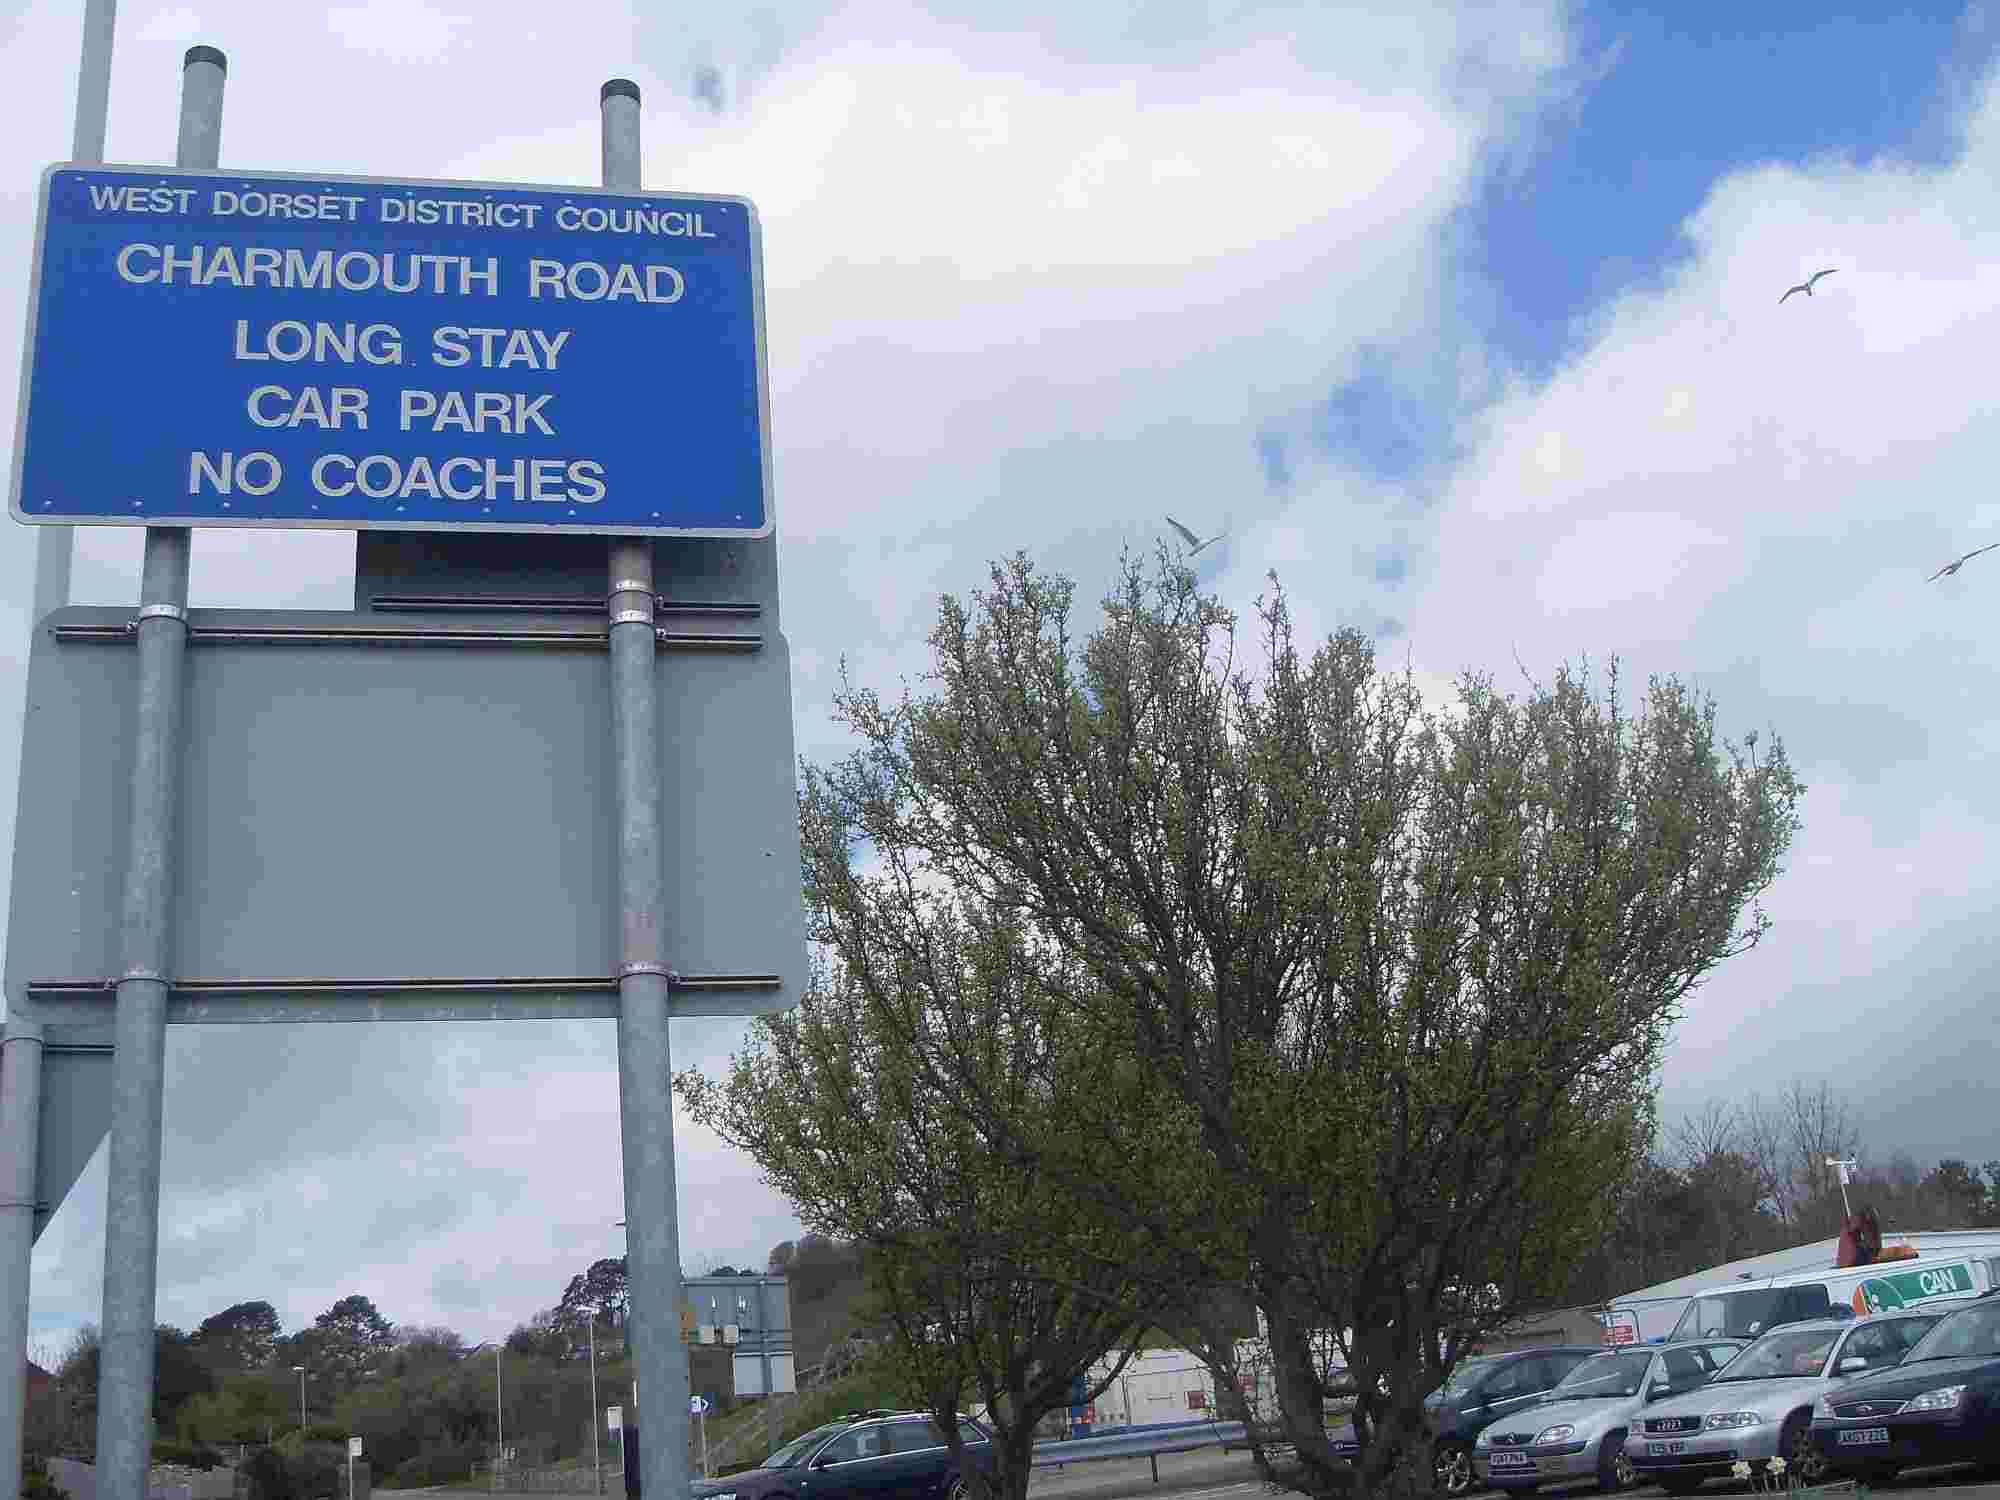 Mayor hits out at 'mismanagement' of car parks as prices set to rise in west Dorset   Bridport and Lyme Regis News